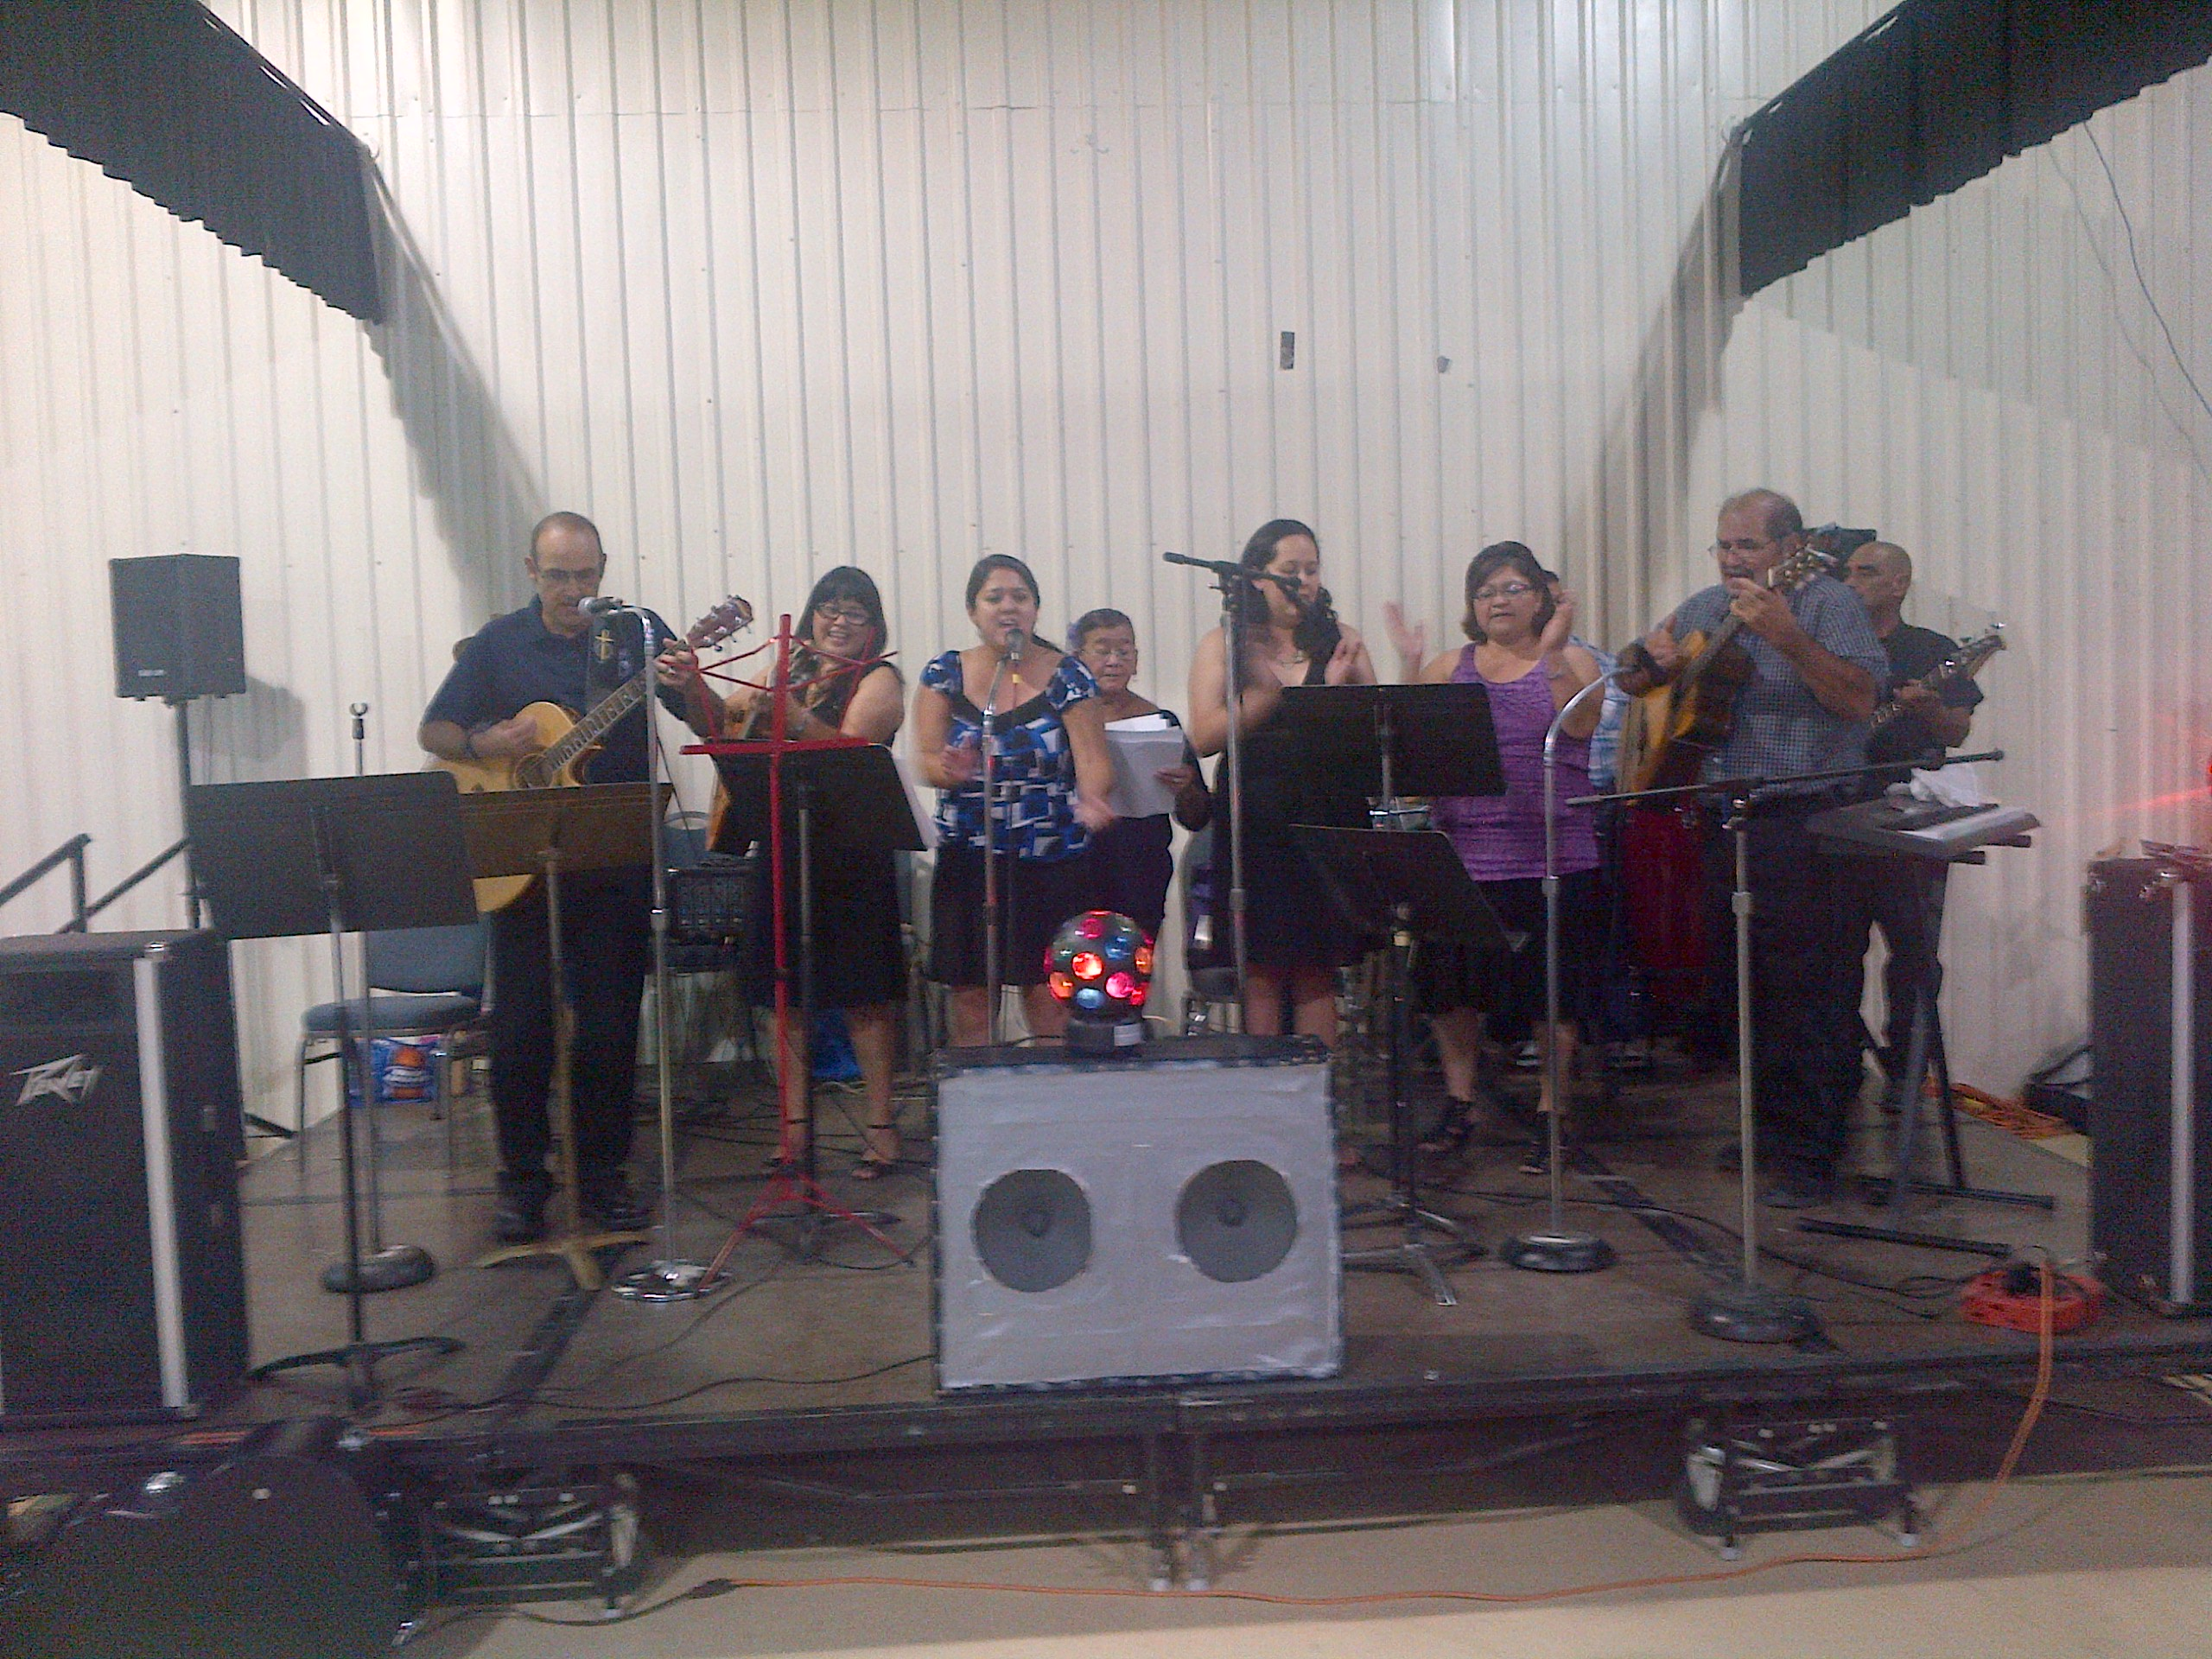 Our Lady of Grace Choir - the Chacon Family